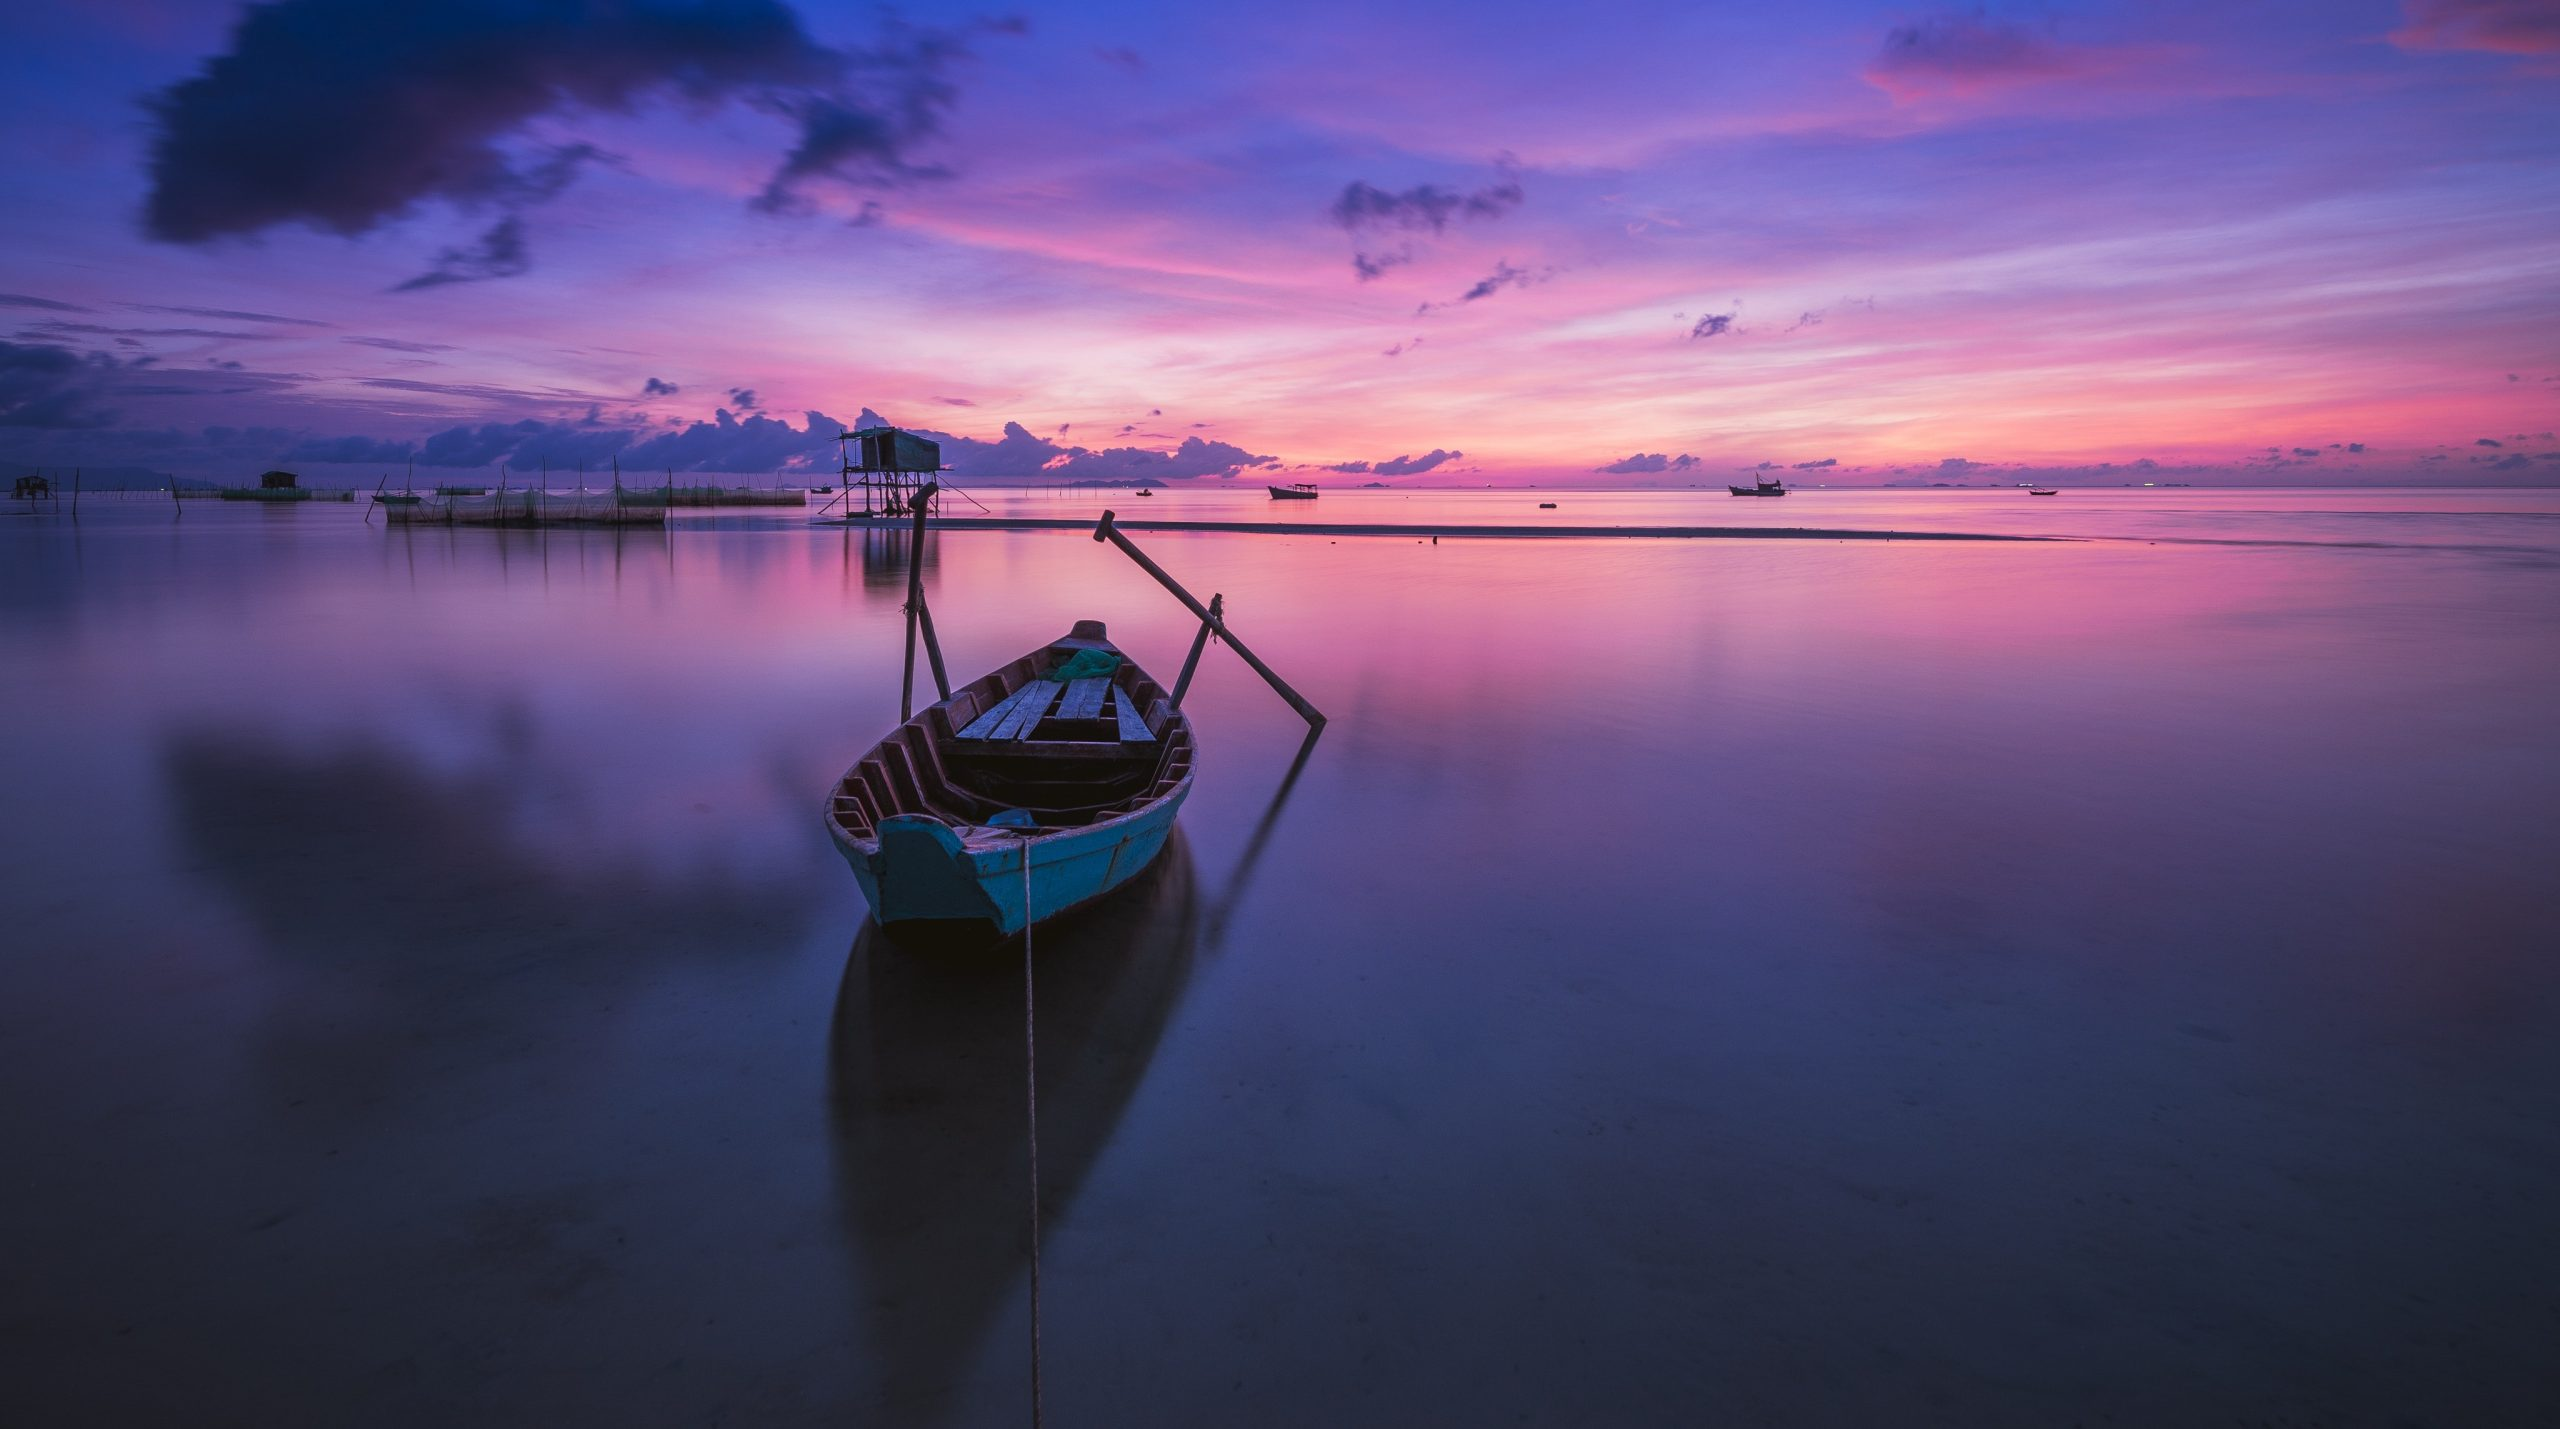 A boat docked in front of a sunset